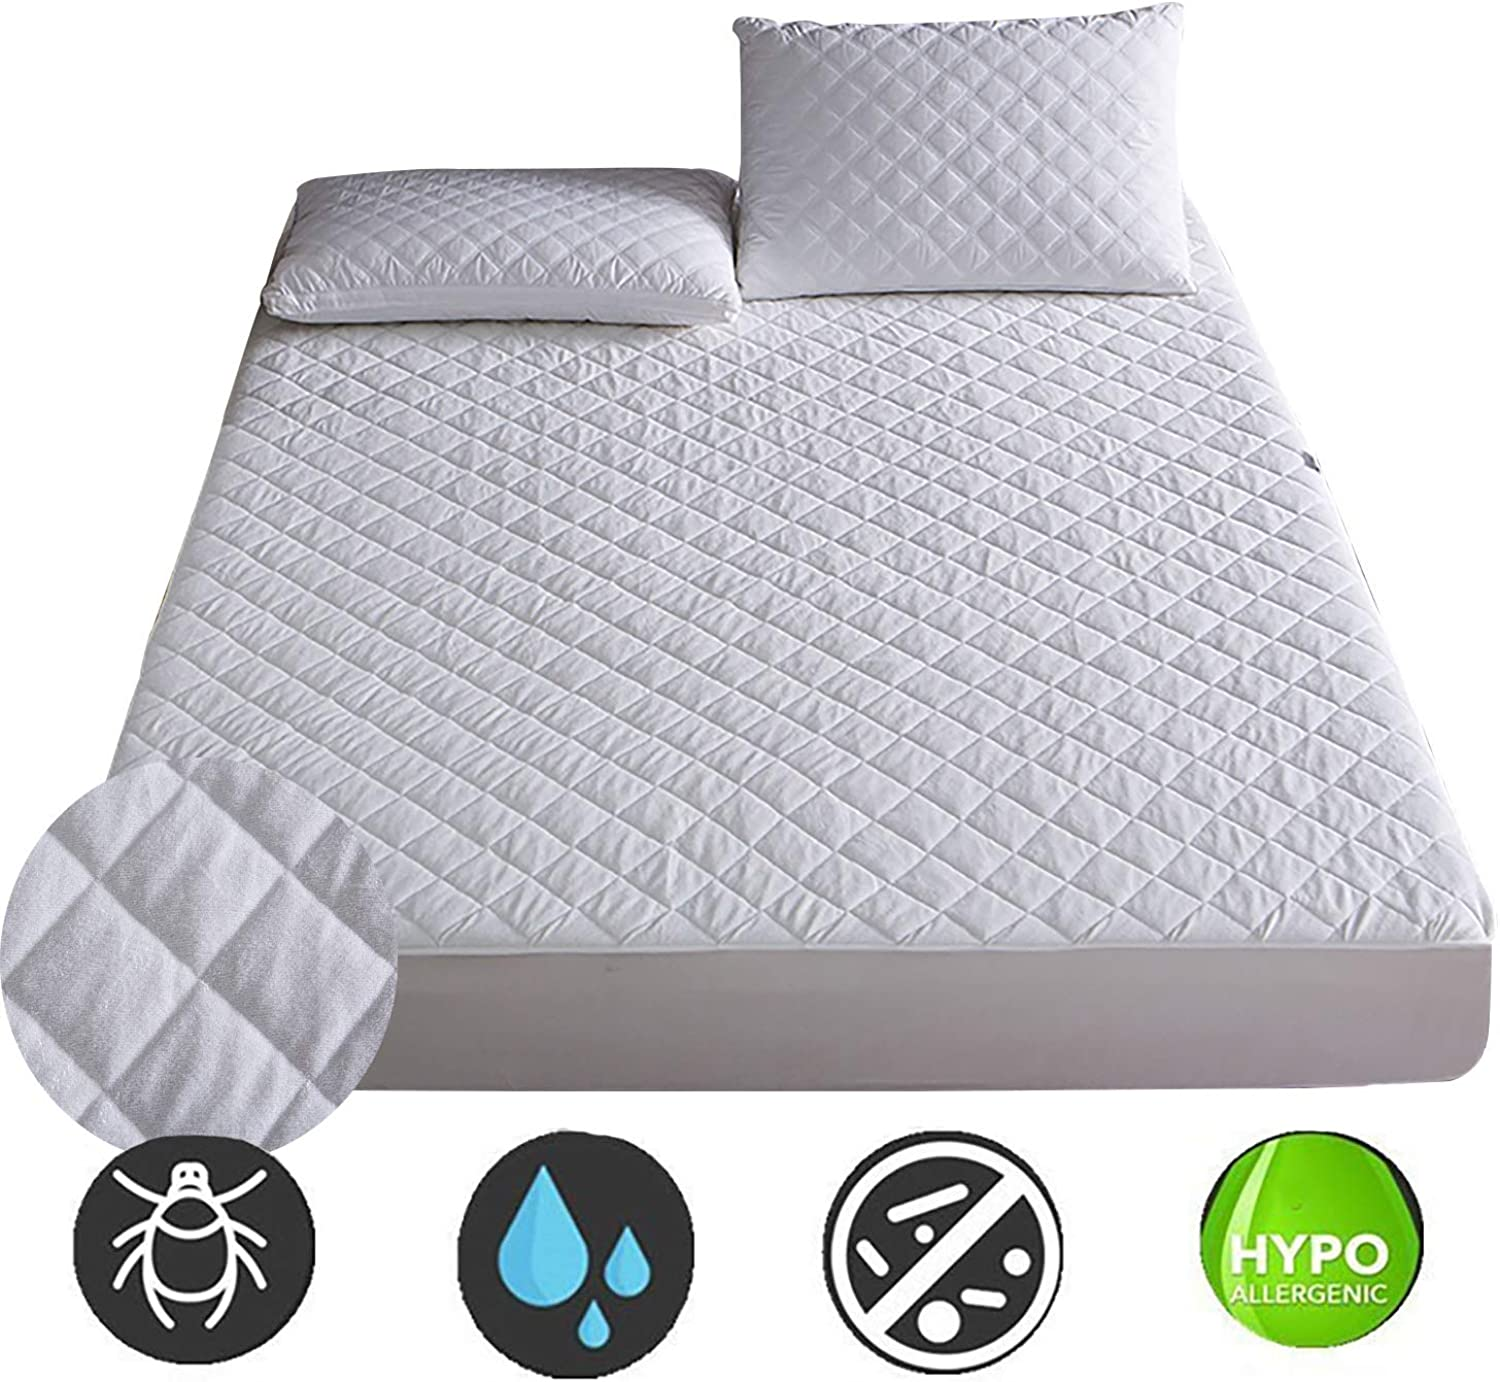 Waterproof Mattress Cover Thick Embossed Mattress Cover (72-200Cm) Thick Waterproof Mattress Mattress Cover,120X200cm